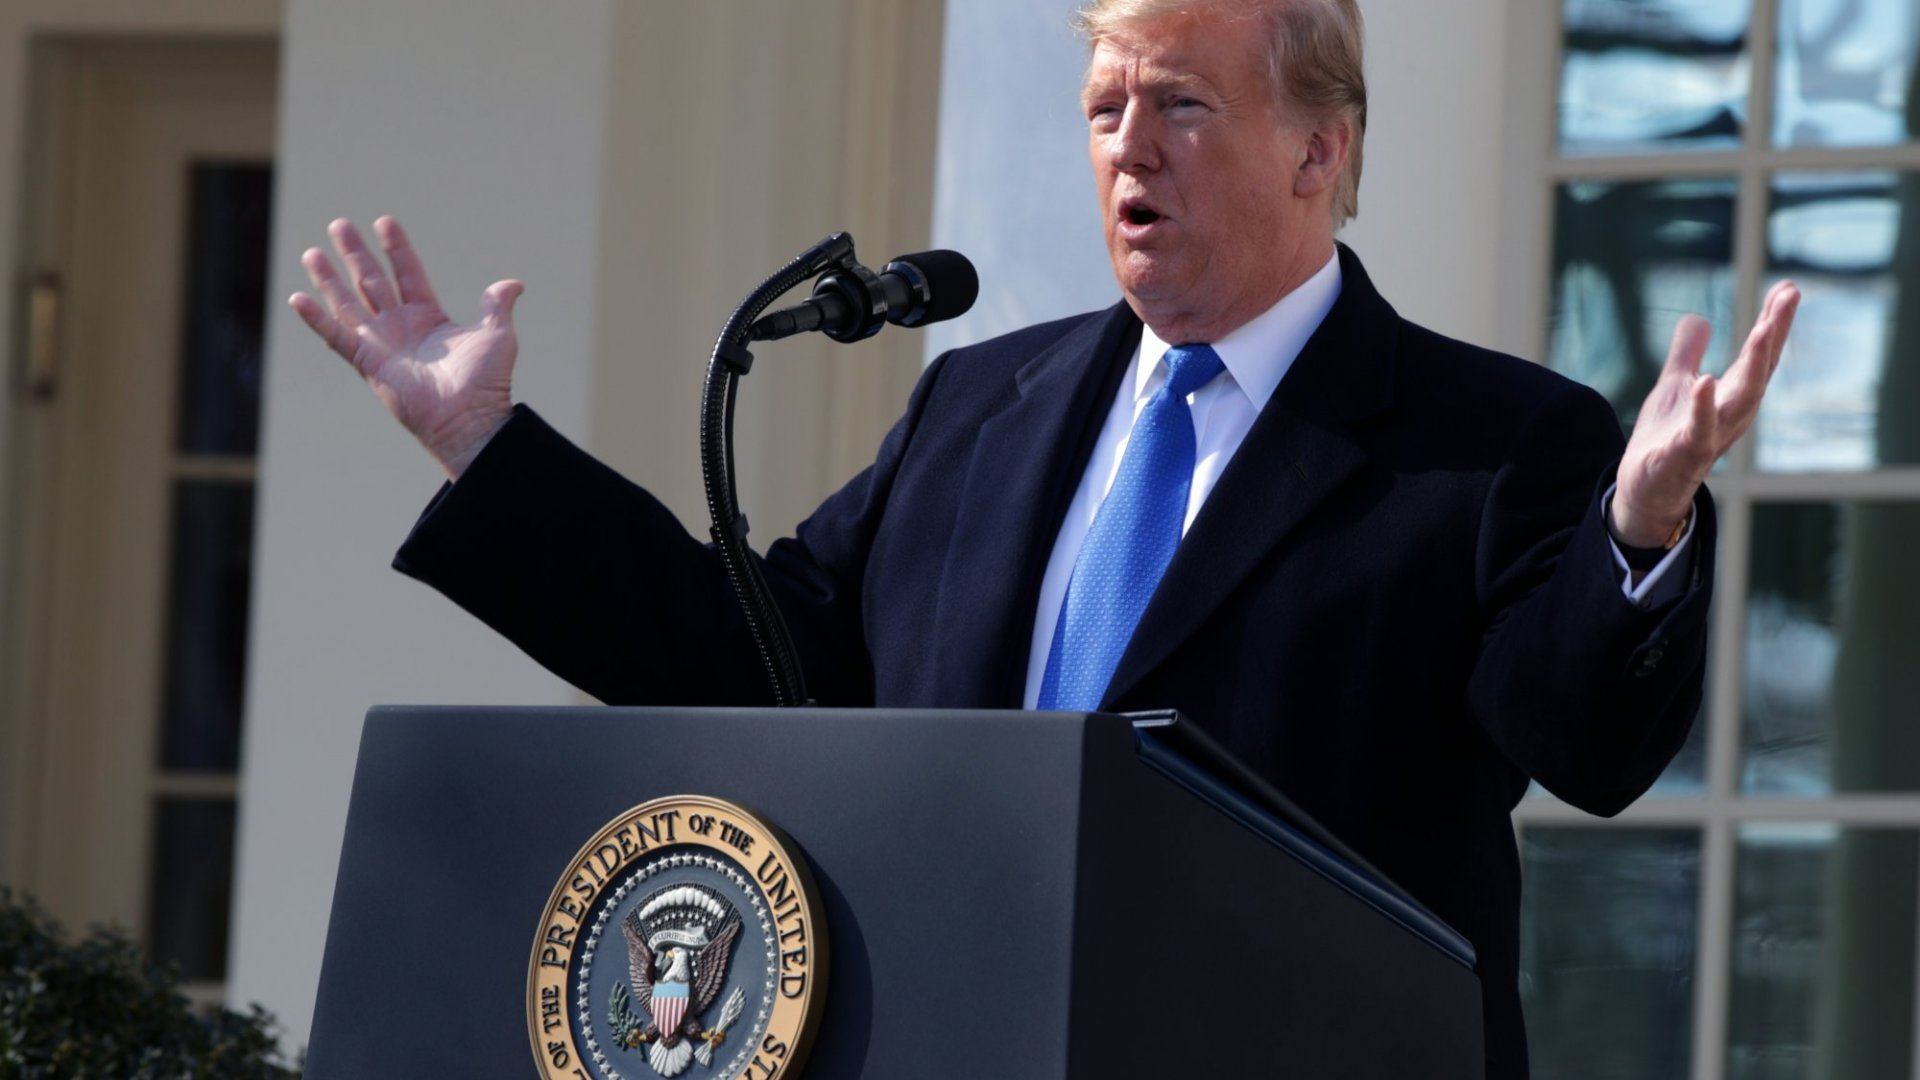 3 Public Speaking No-No's Leaders Can Learn From Trump's National Emergency Speech Declaration